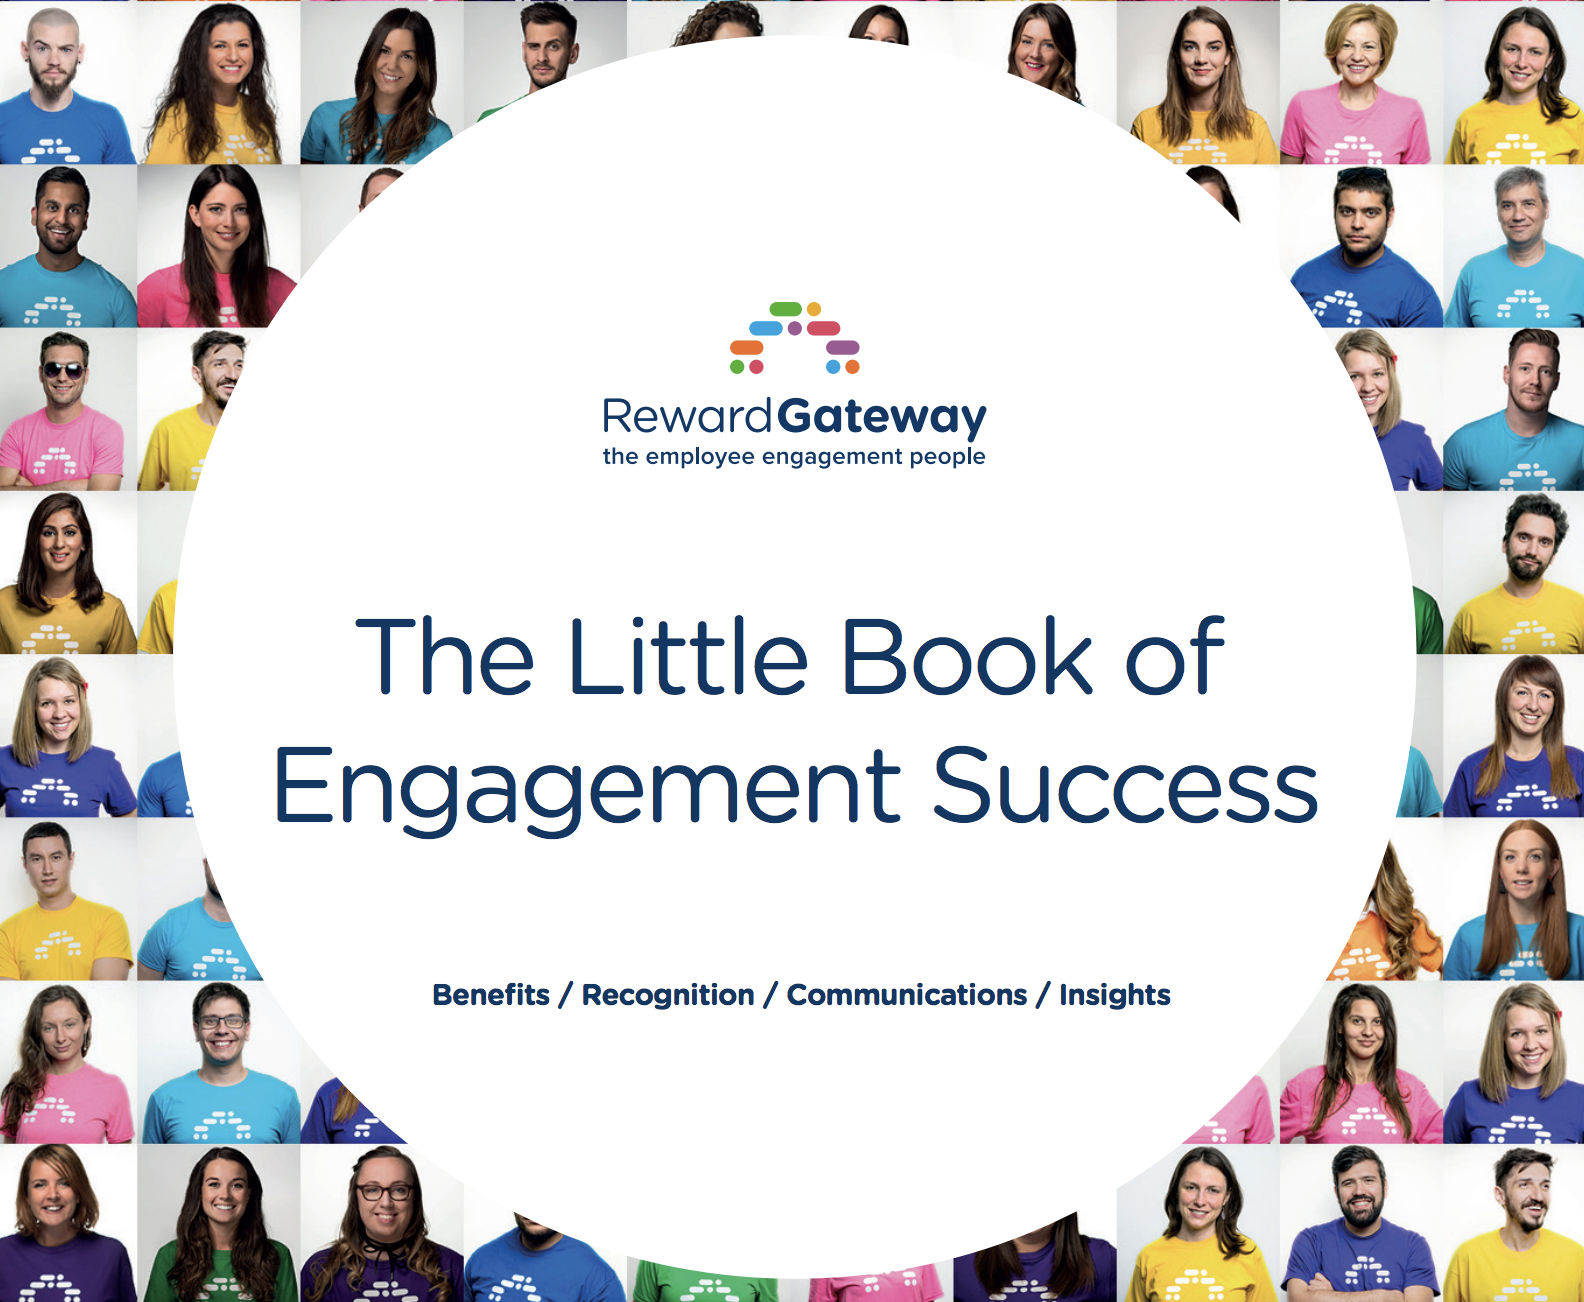 Examples of employee engagement programs